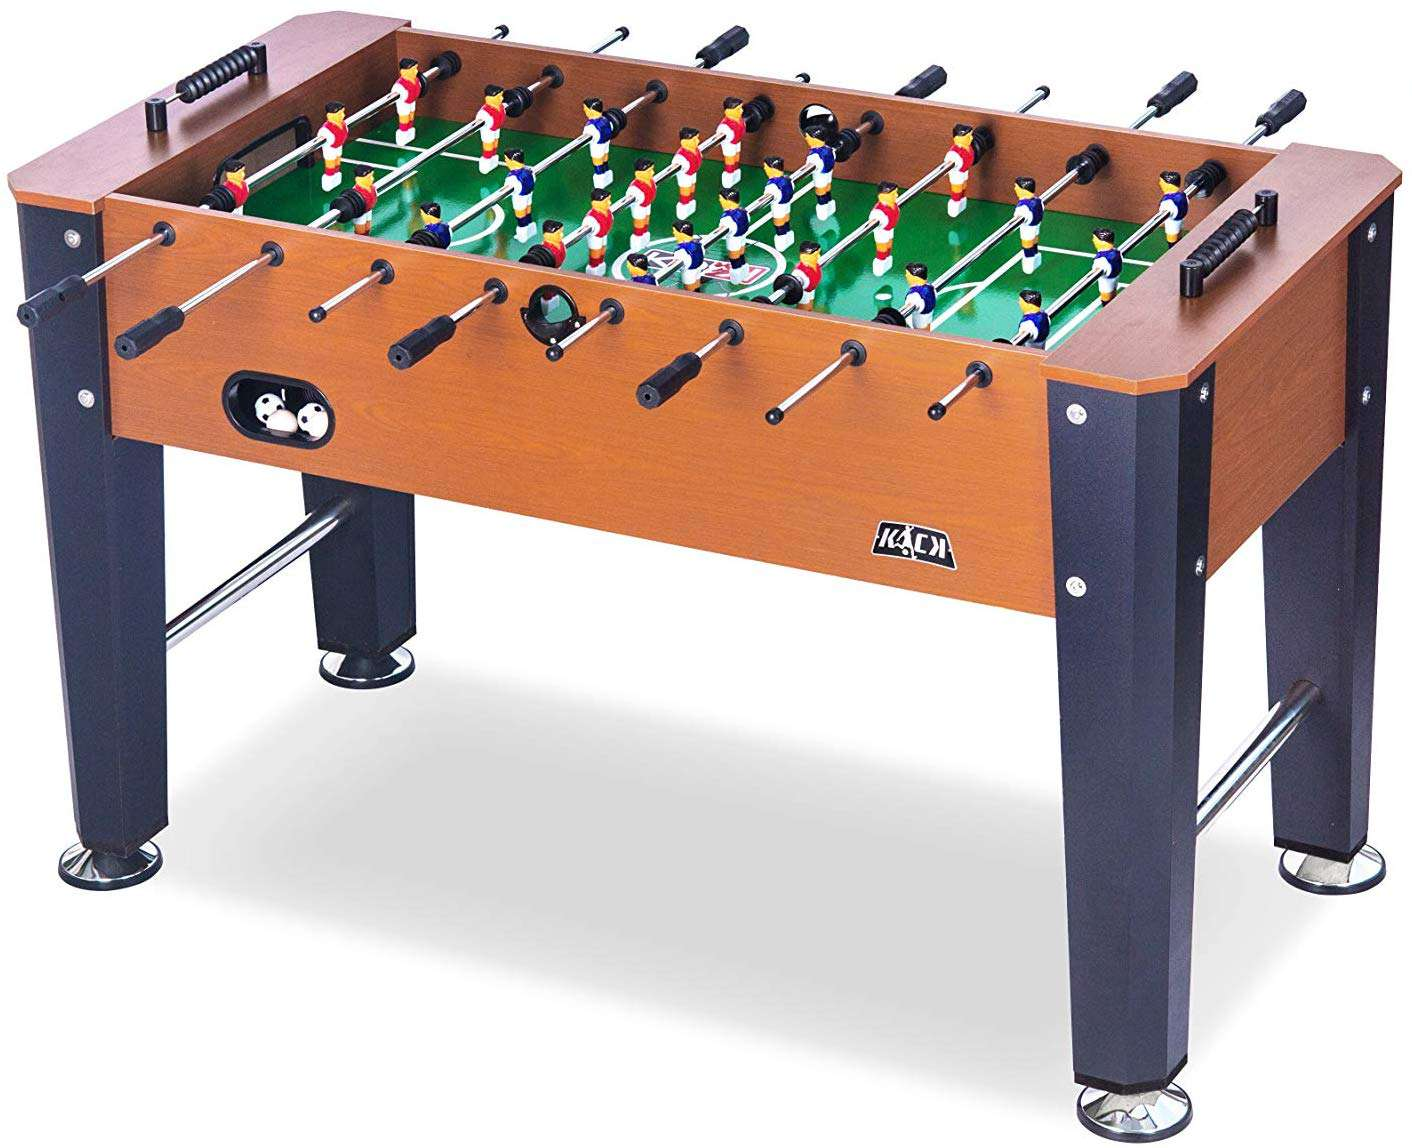 KICK Venture Foosball Table